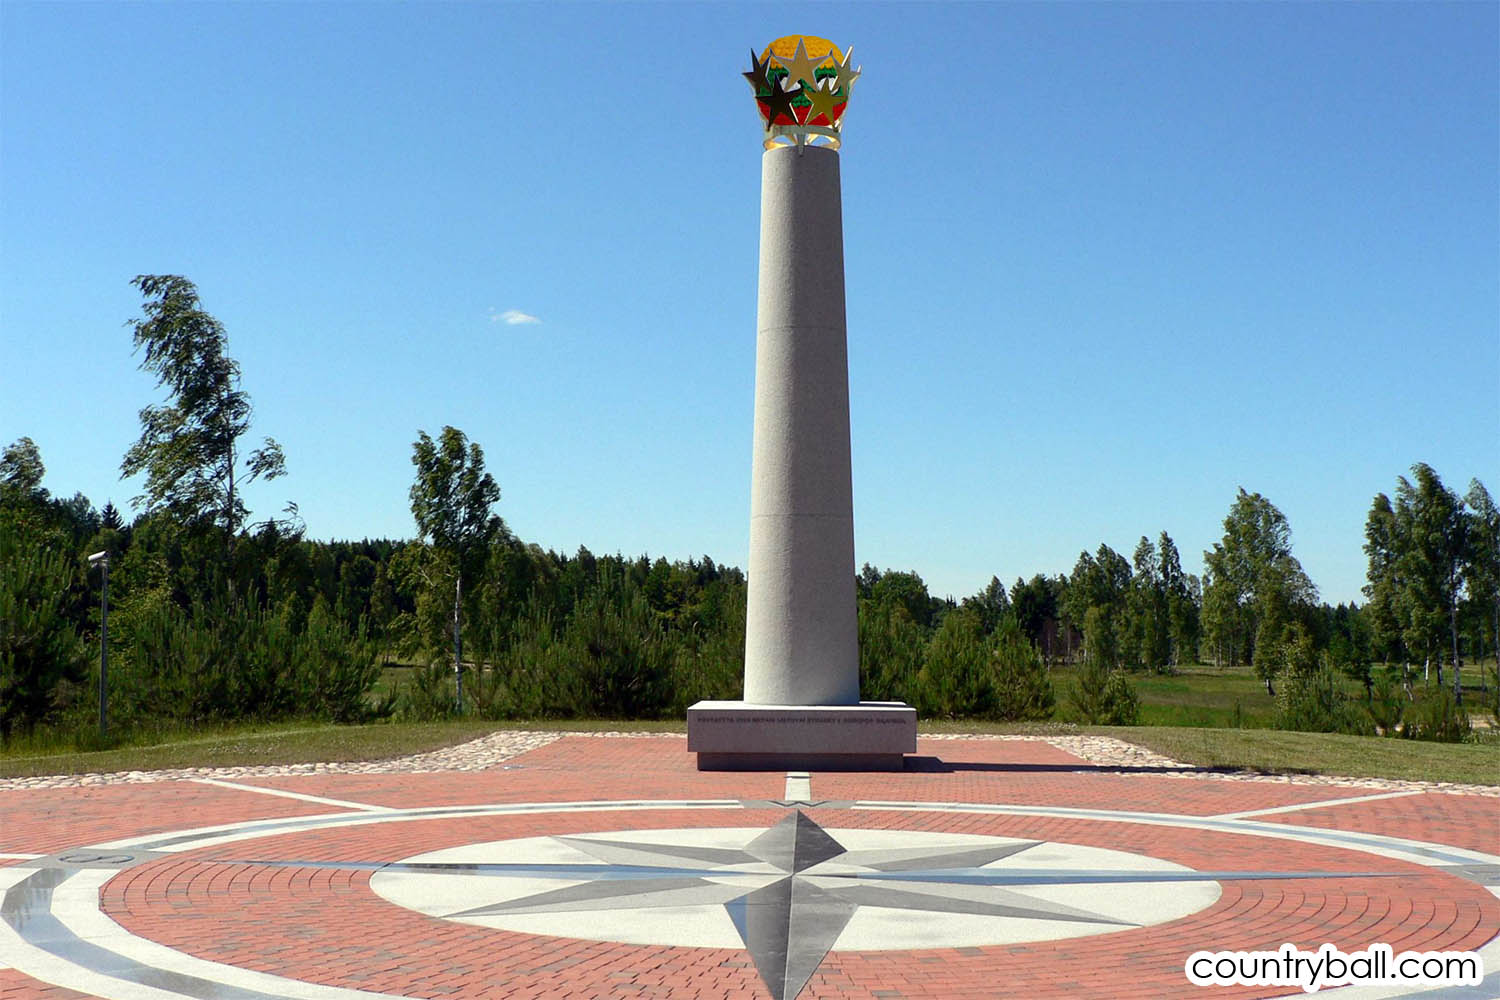 The Geographical Center of Europe